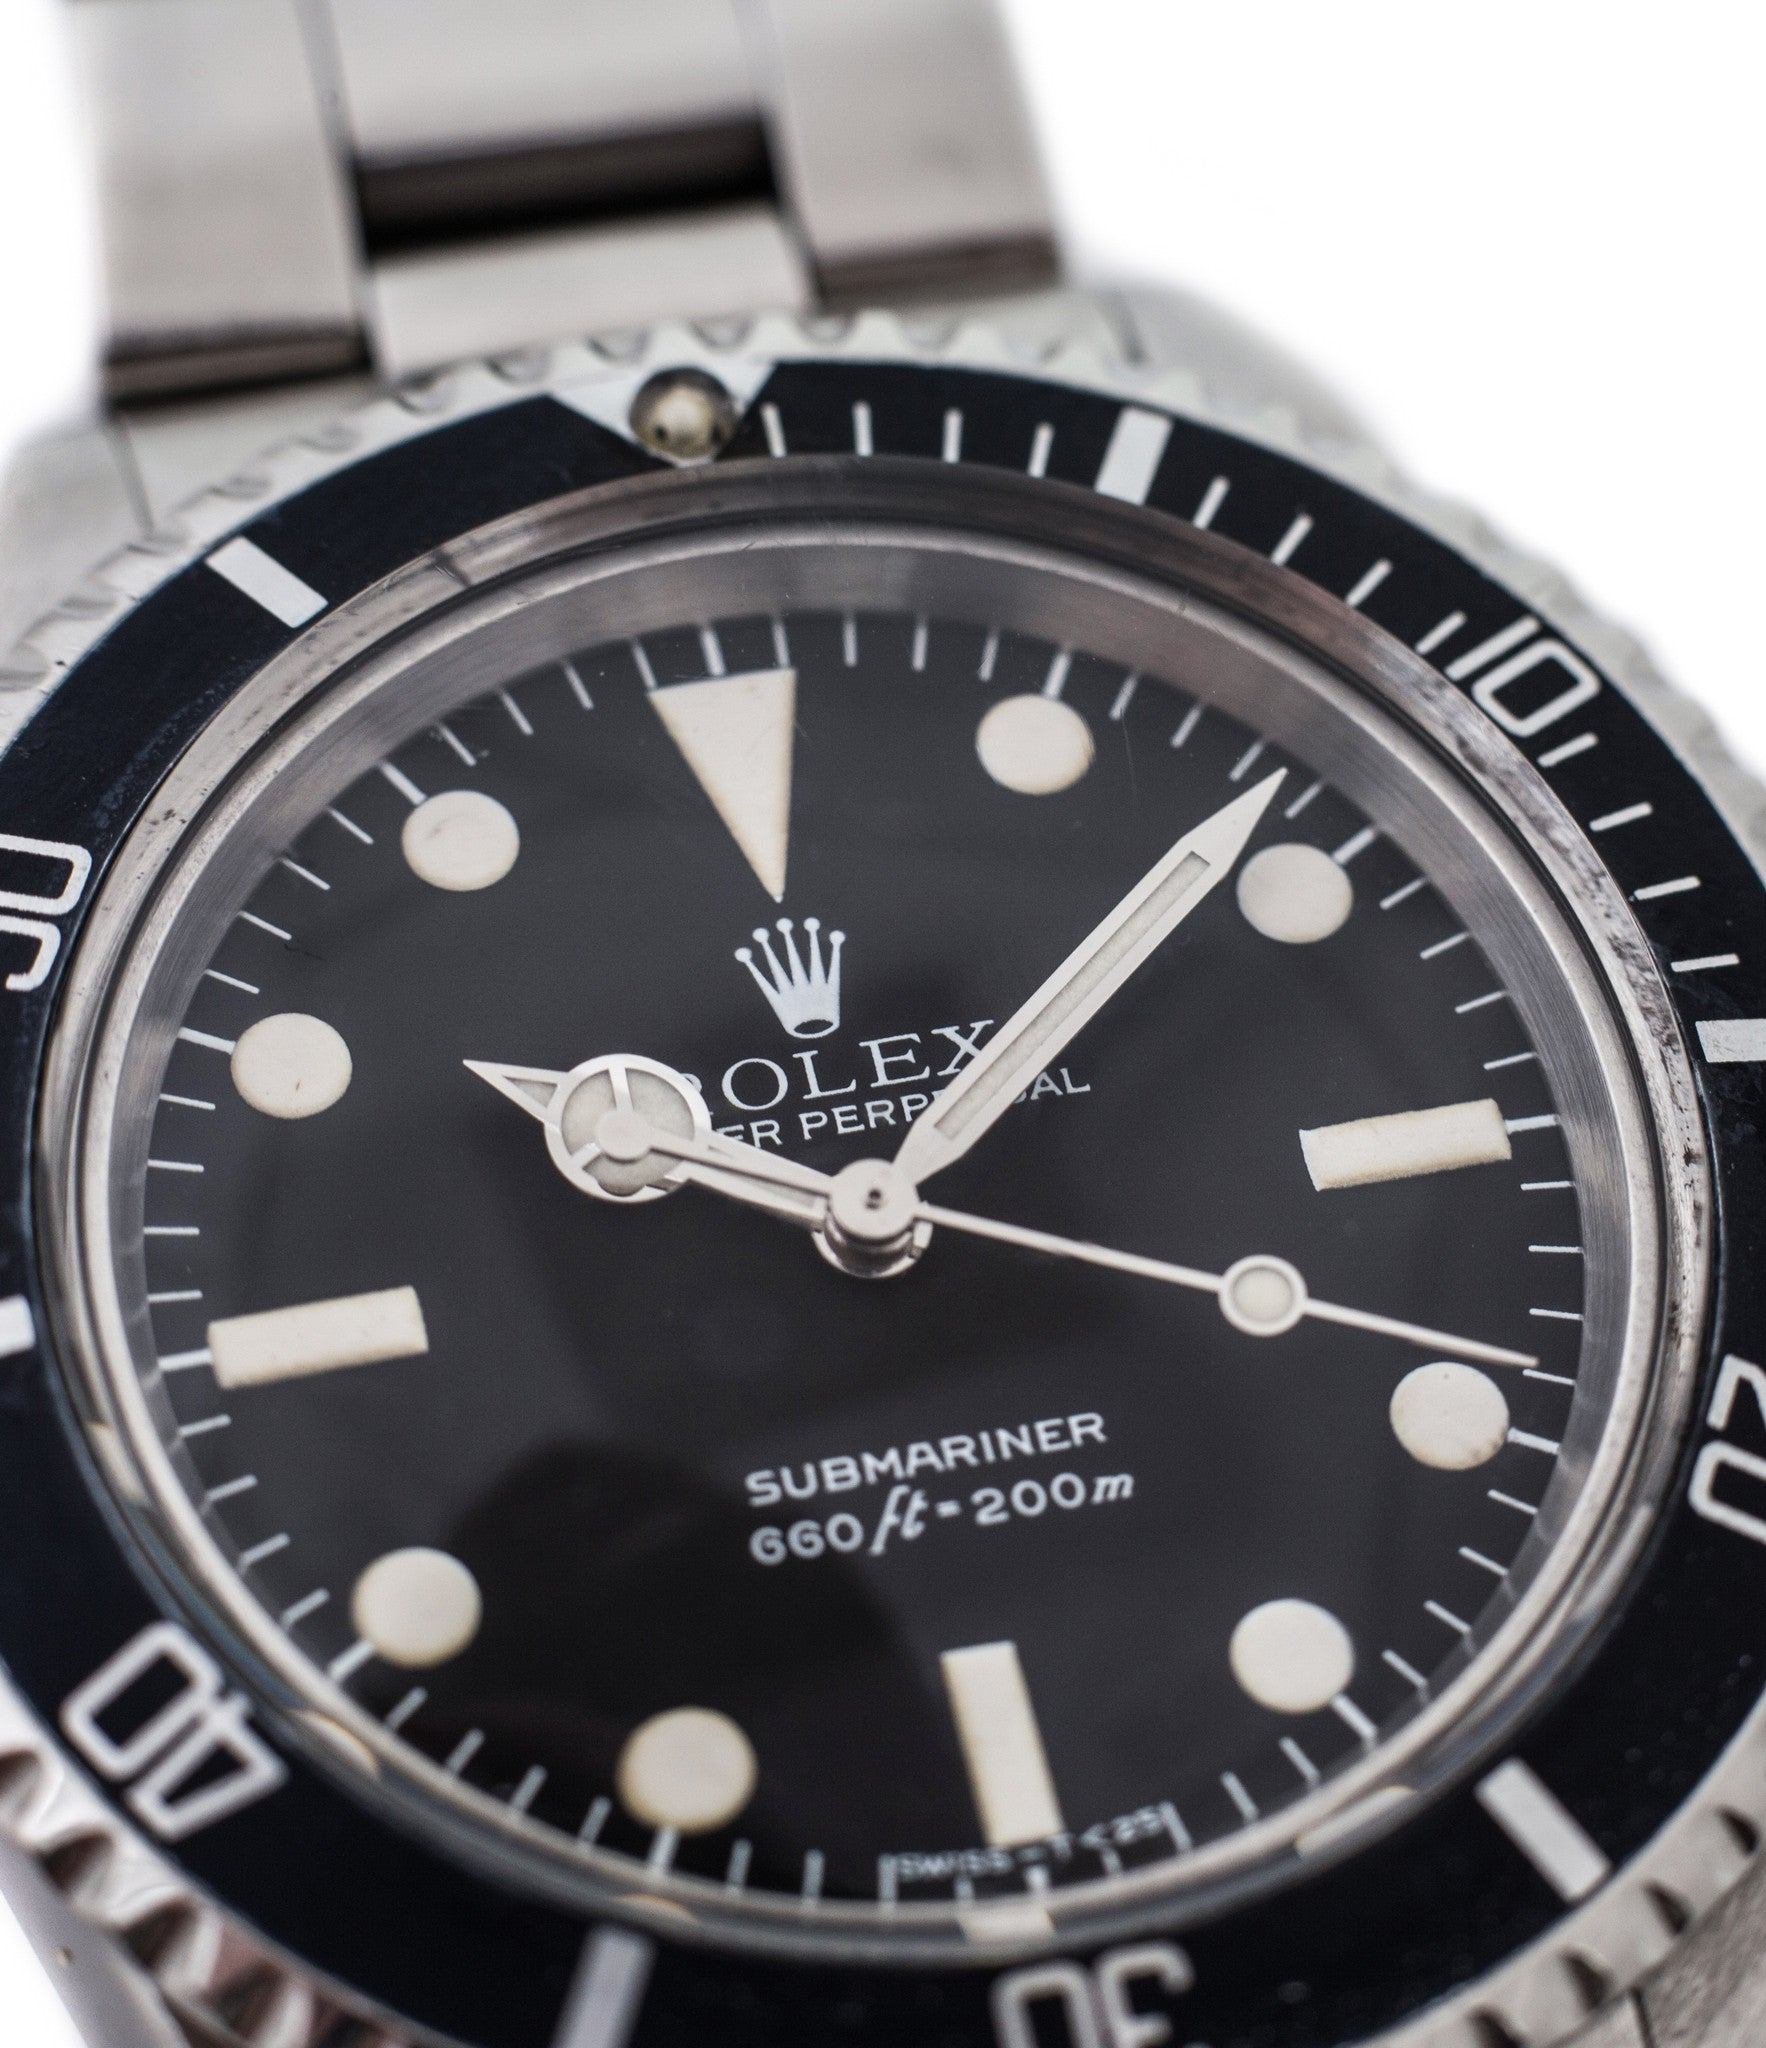 rolex distribution Essays - largest database of quality sample essays and research papers on rolex distribution.